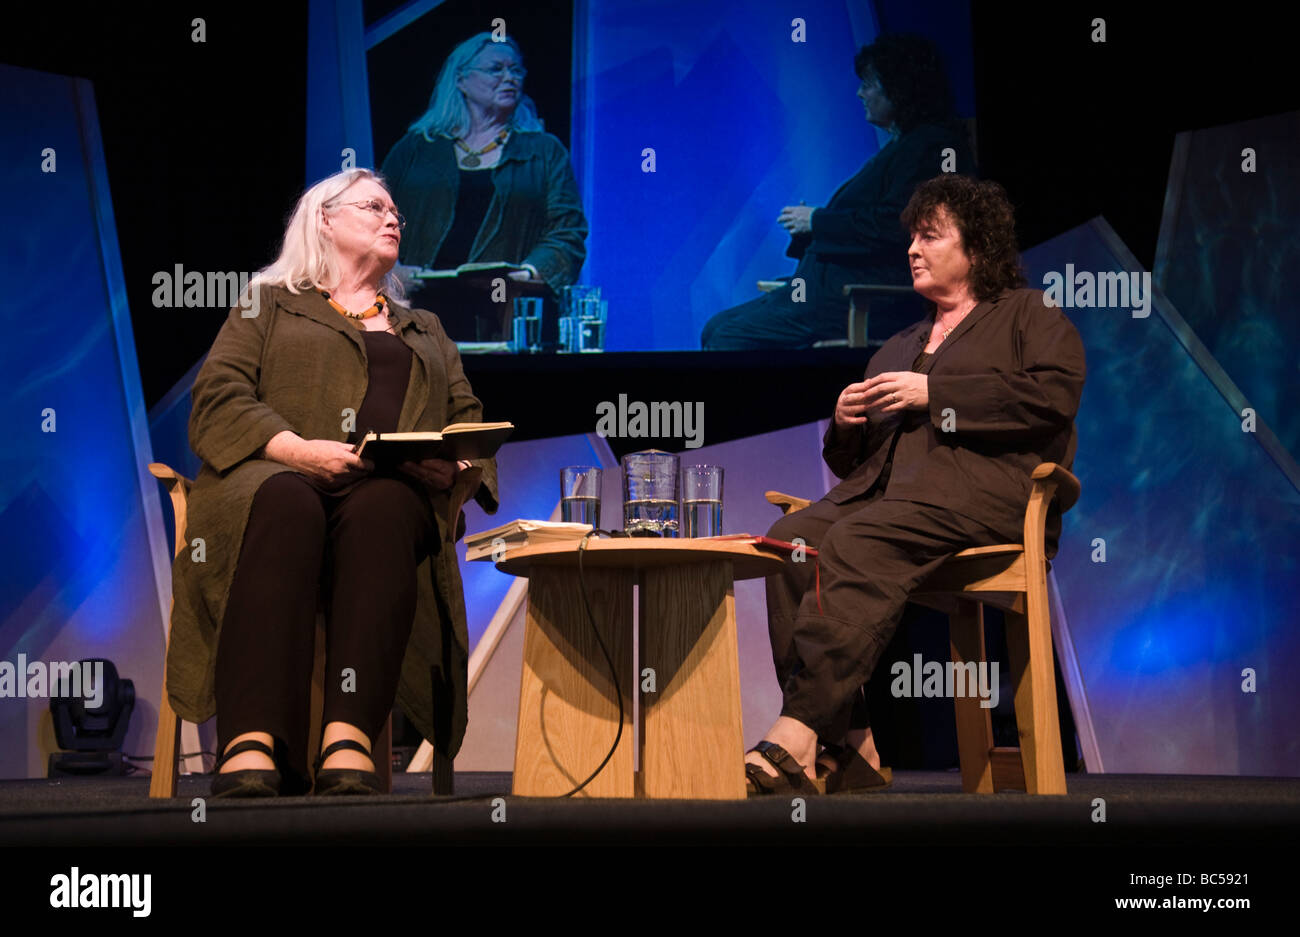 Poets Carol Ann Duffy (R) and Gillian Clarke (L) talking on stage at Hay Festival 2009 - Stock Image